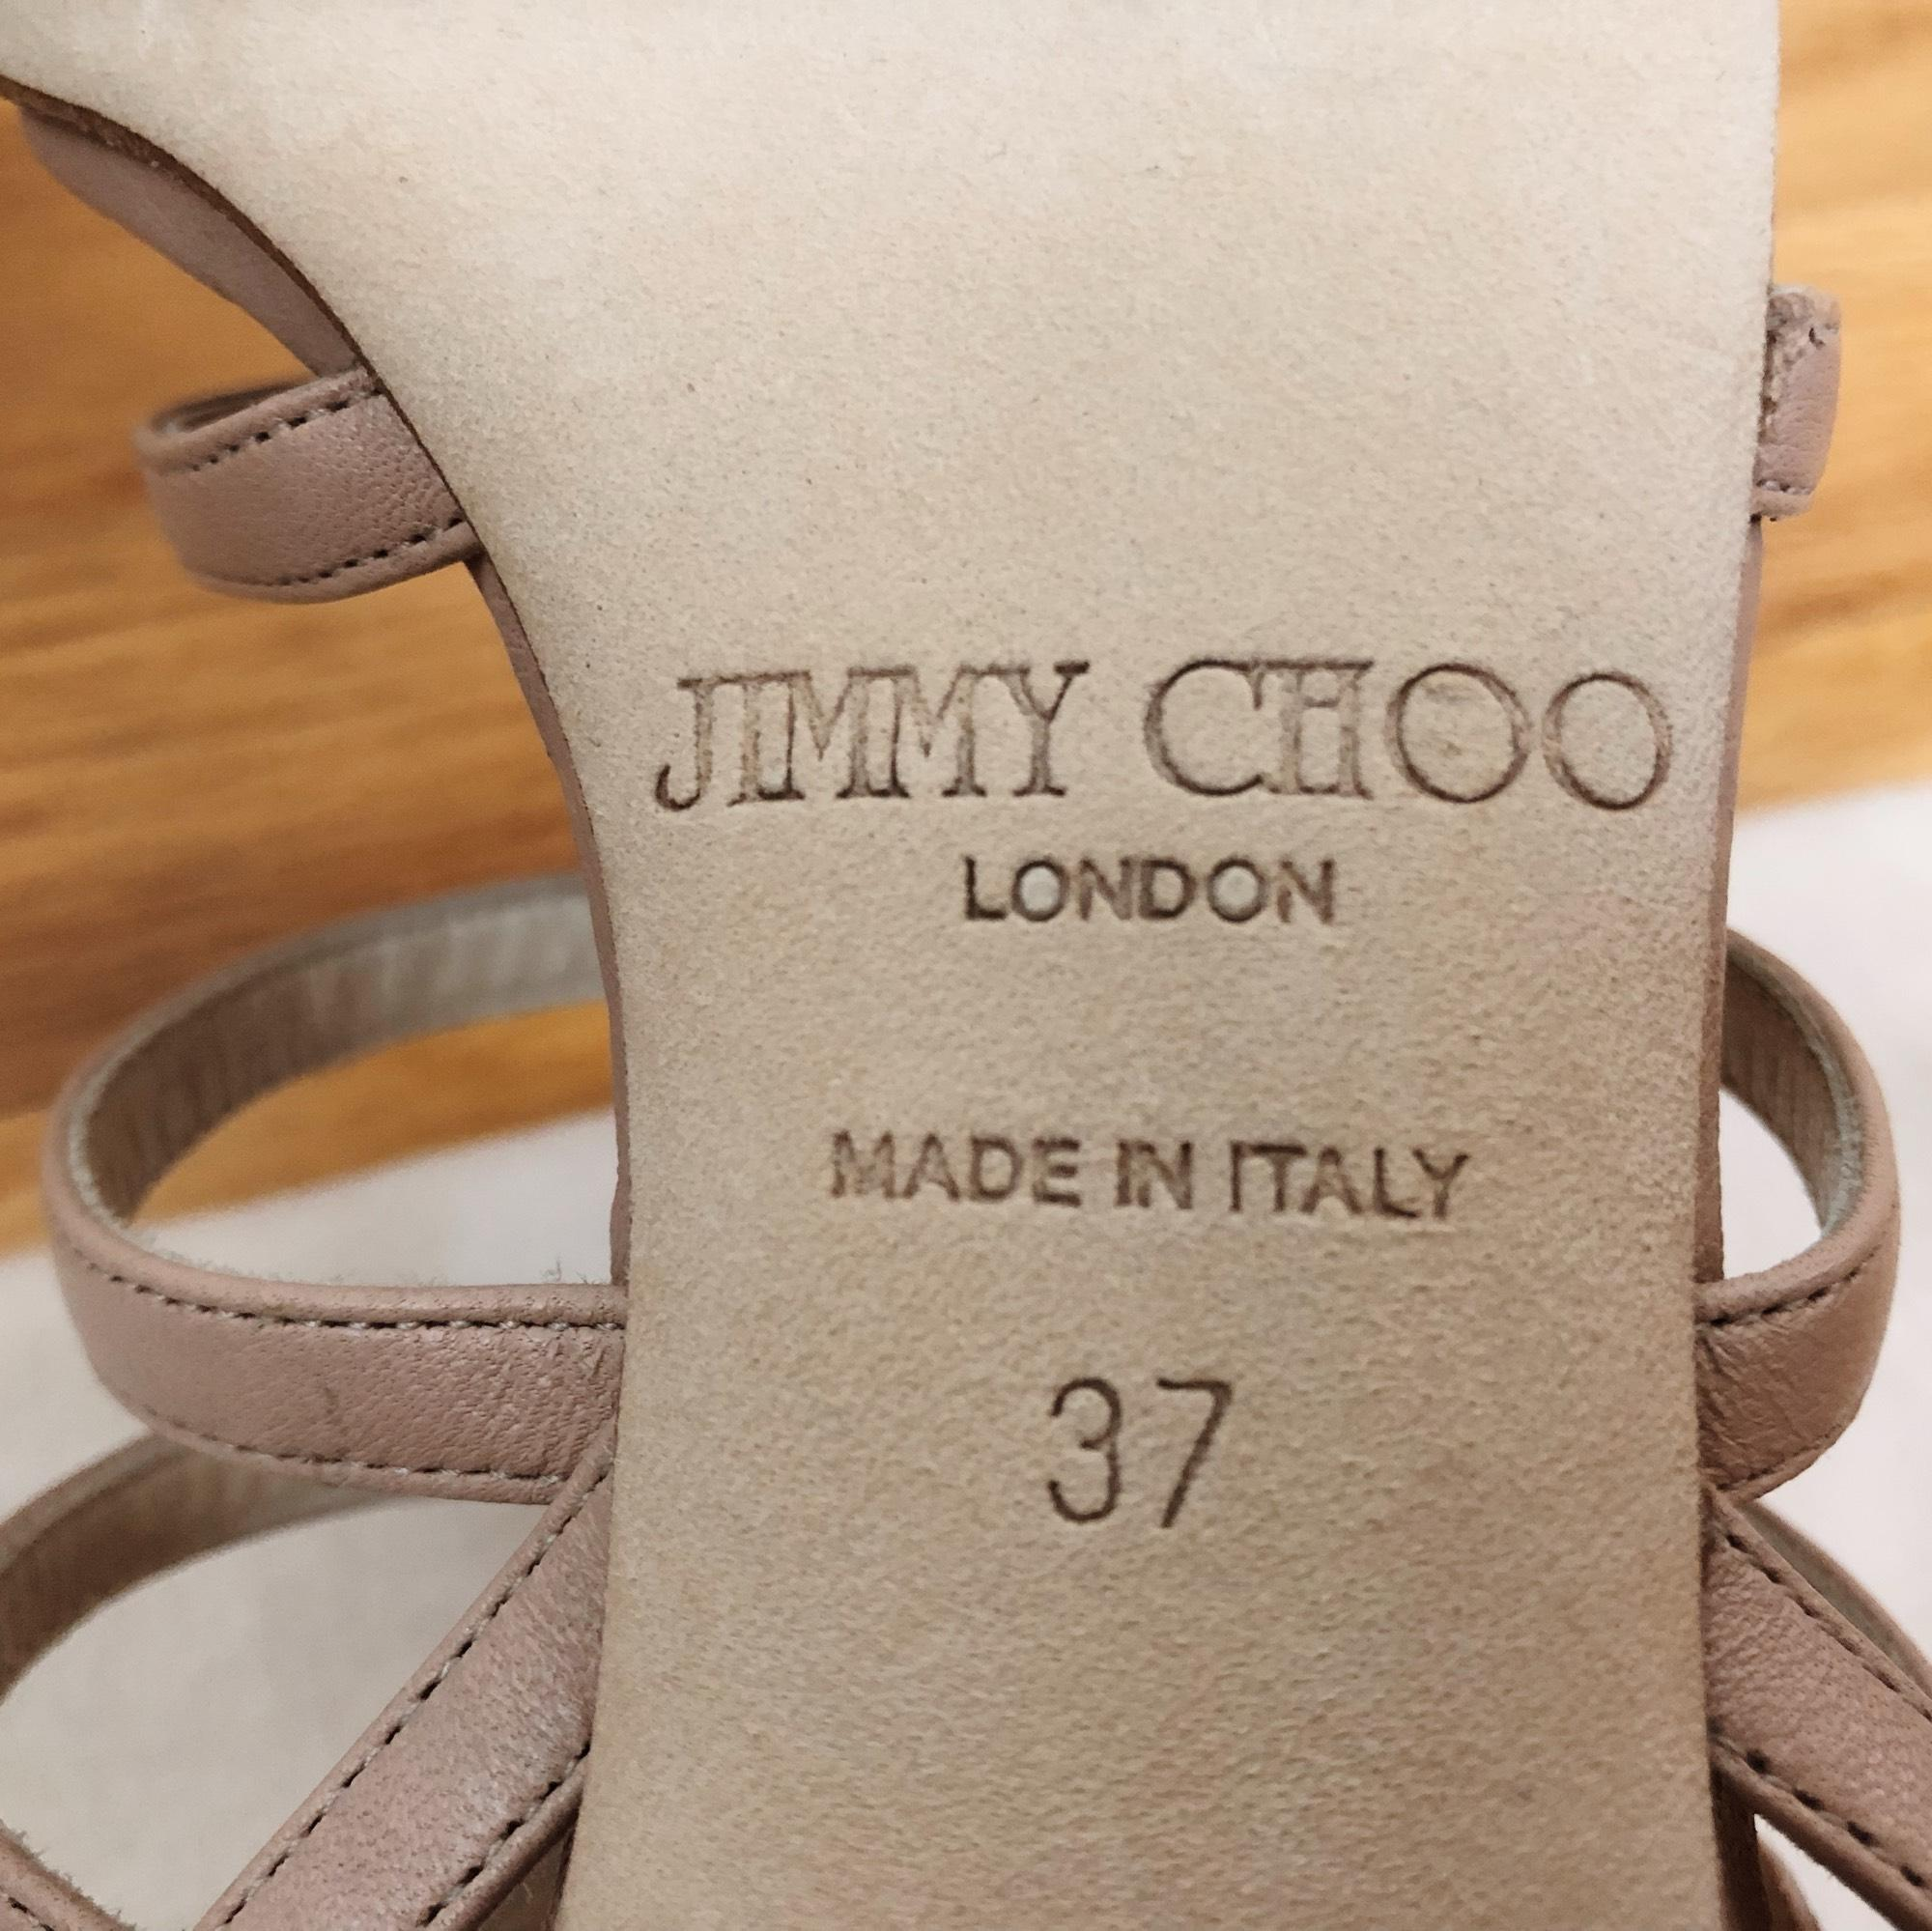 ab4c91e7b046 Jimmy Choo Caged Caged Caged Flower Pink Beige Sandals Size EU 37 (Approx.